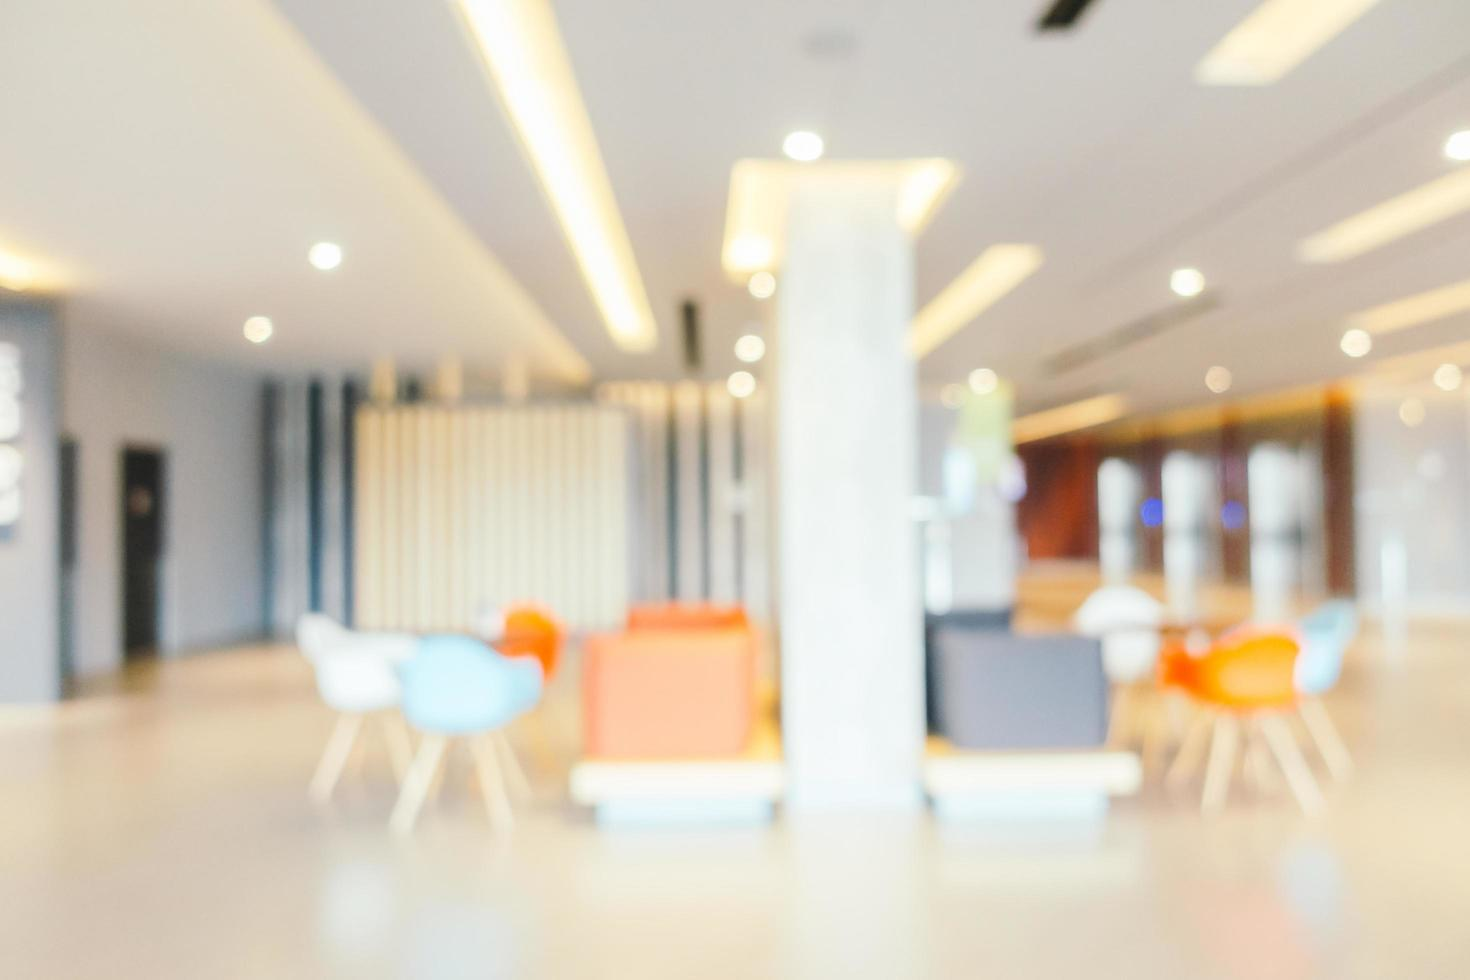 Abstract blur beautiful and luxury hotel lobby interior photo